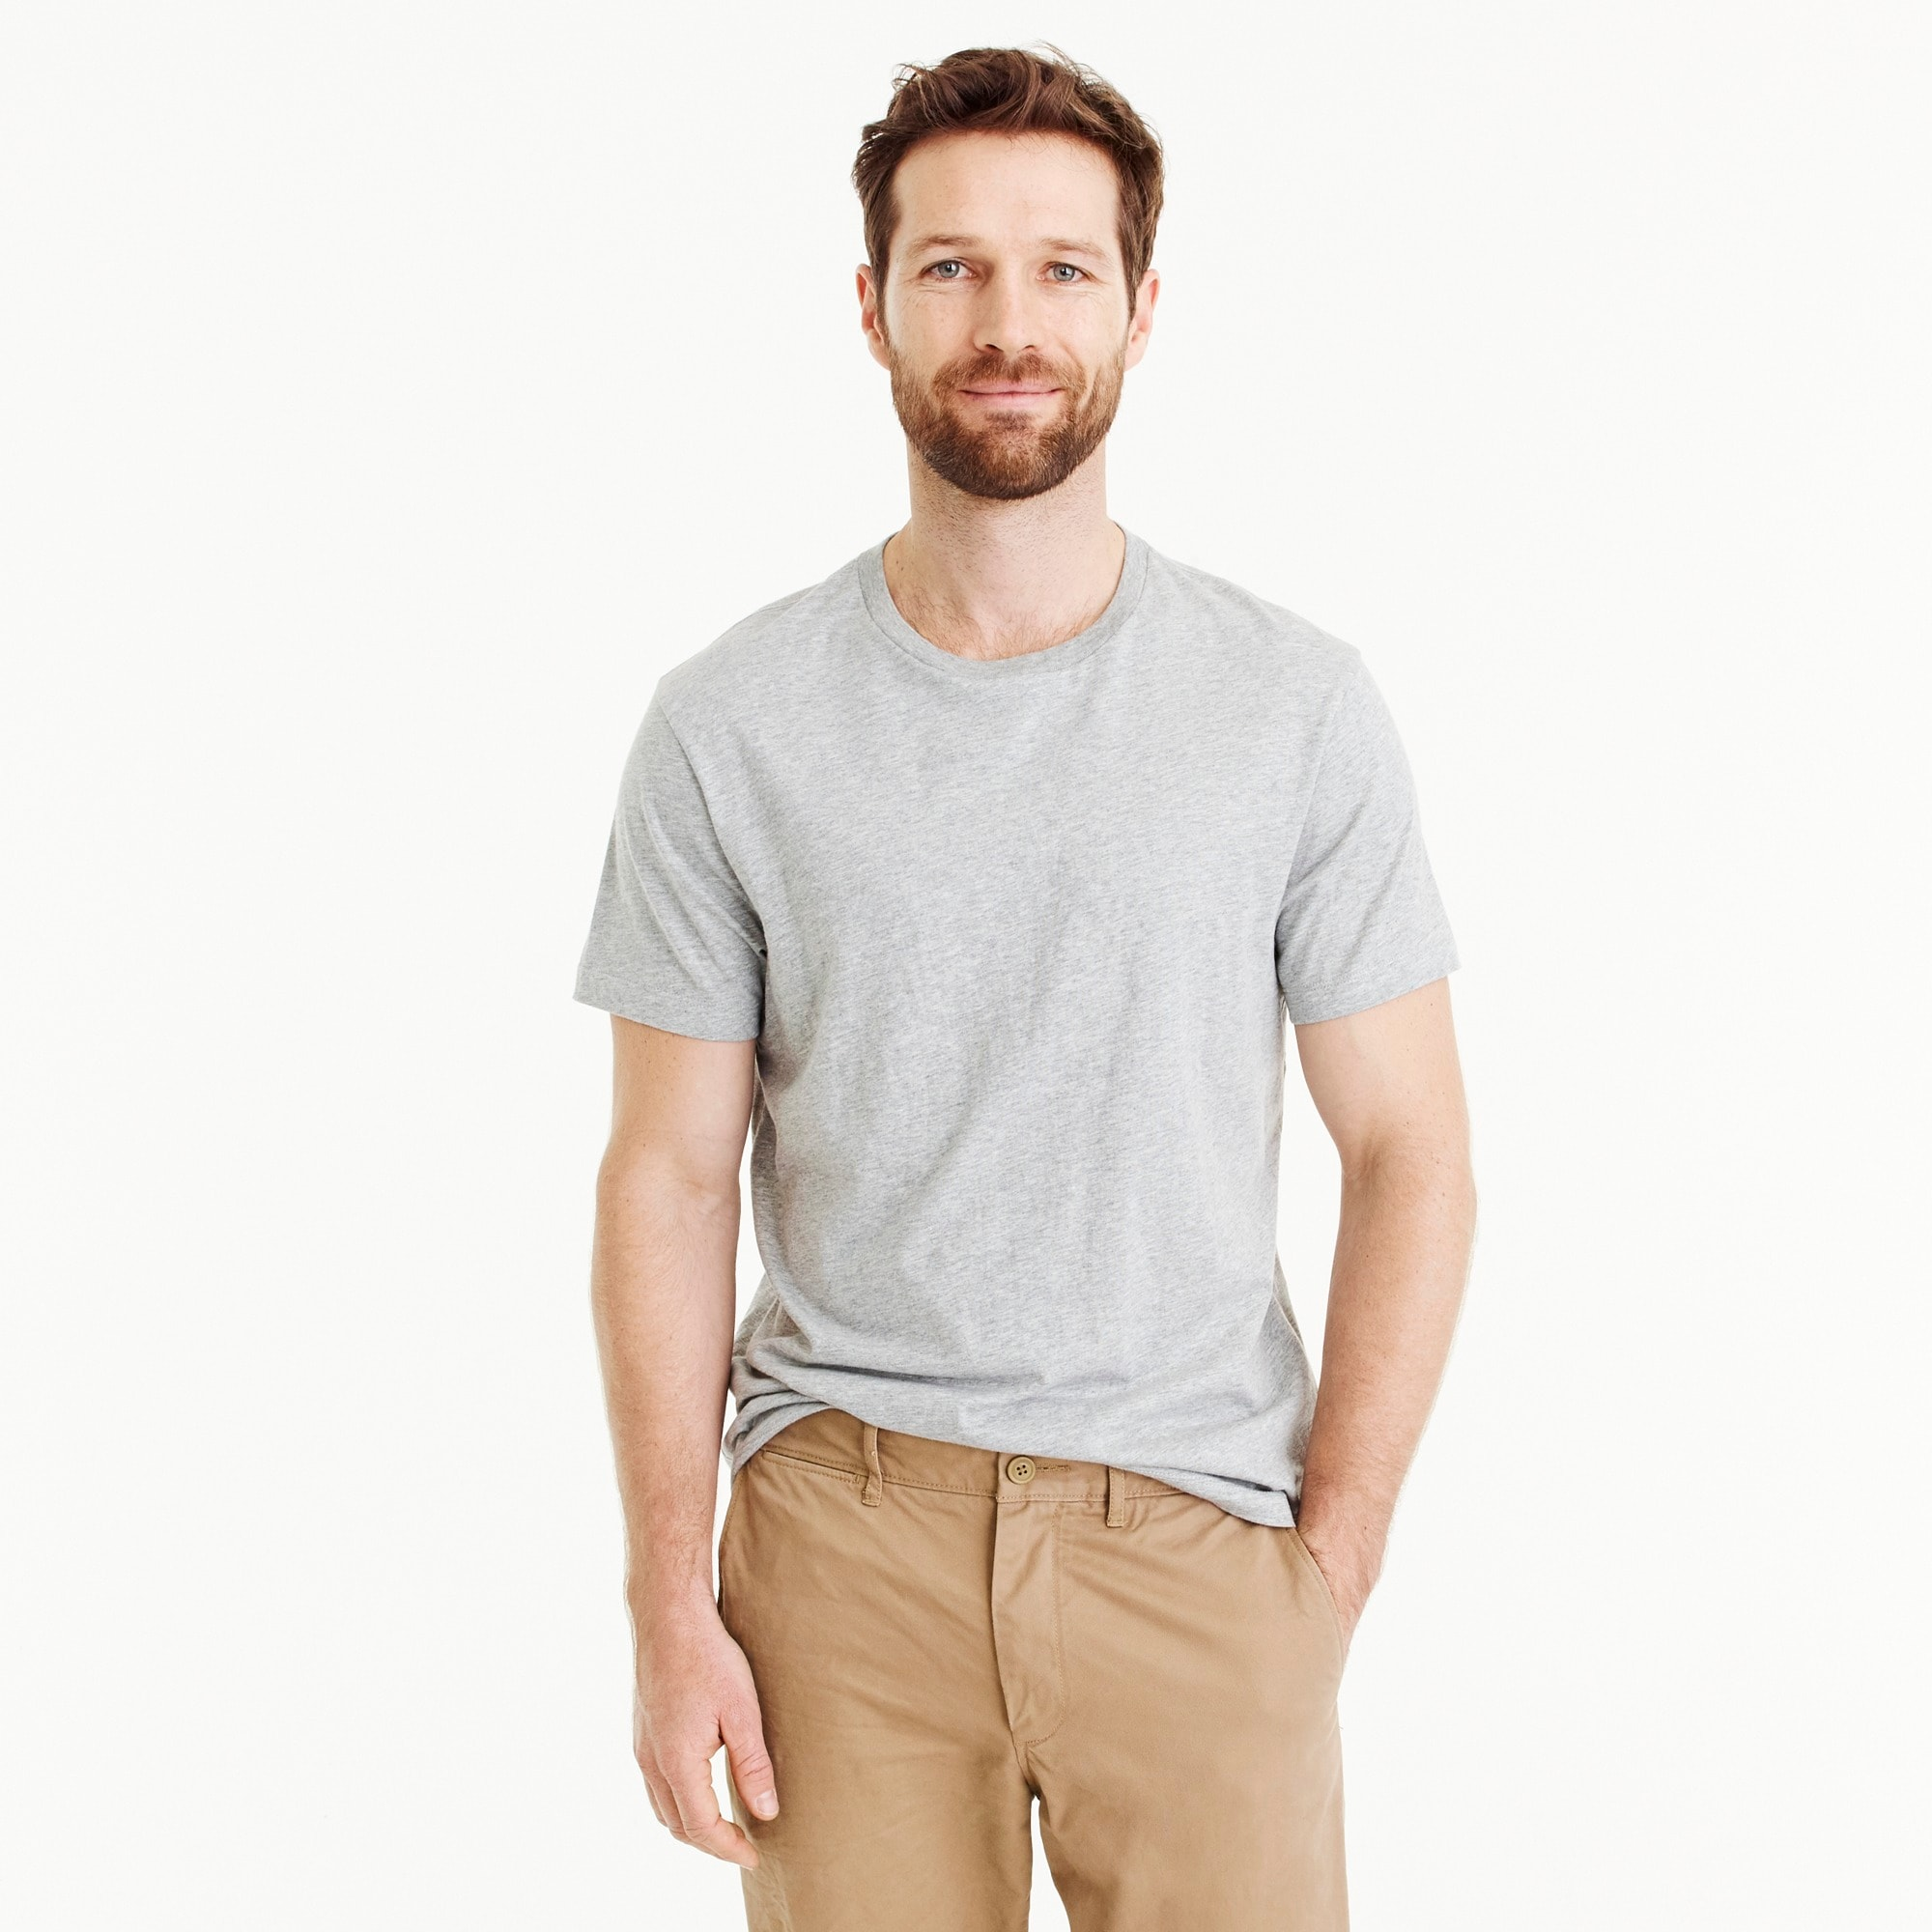 J.Crew Mercantile Broken-in crewneck T-shirt in heather grey